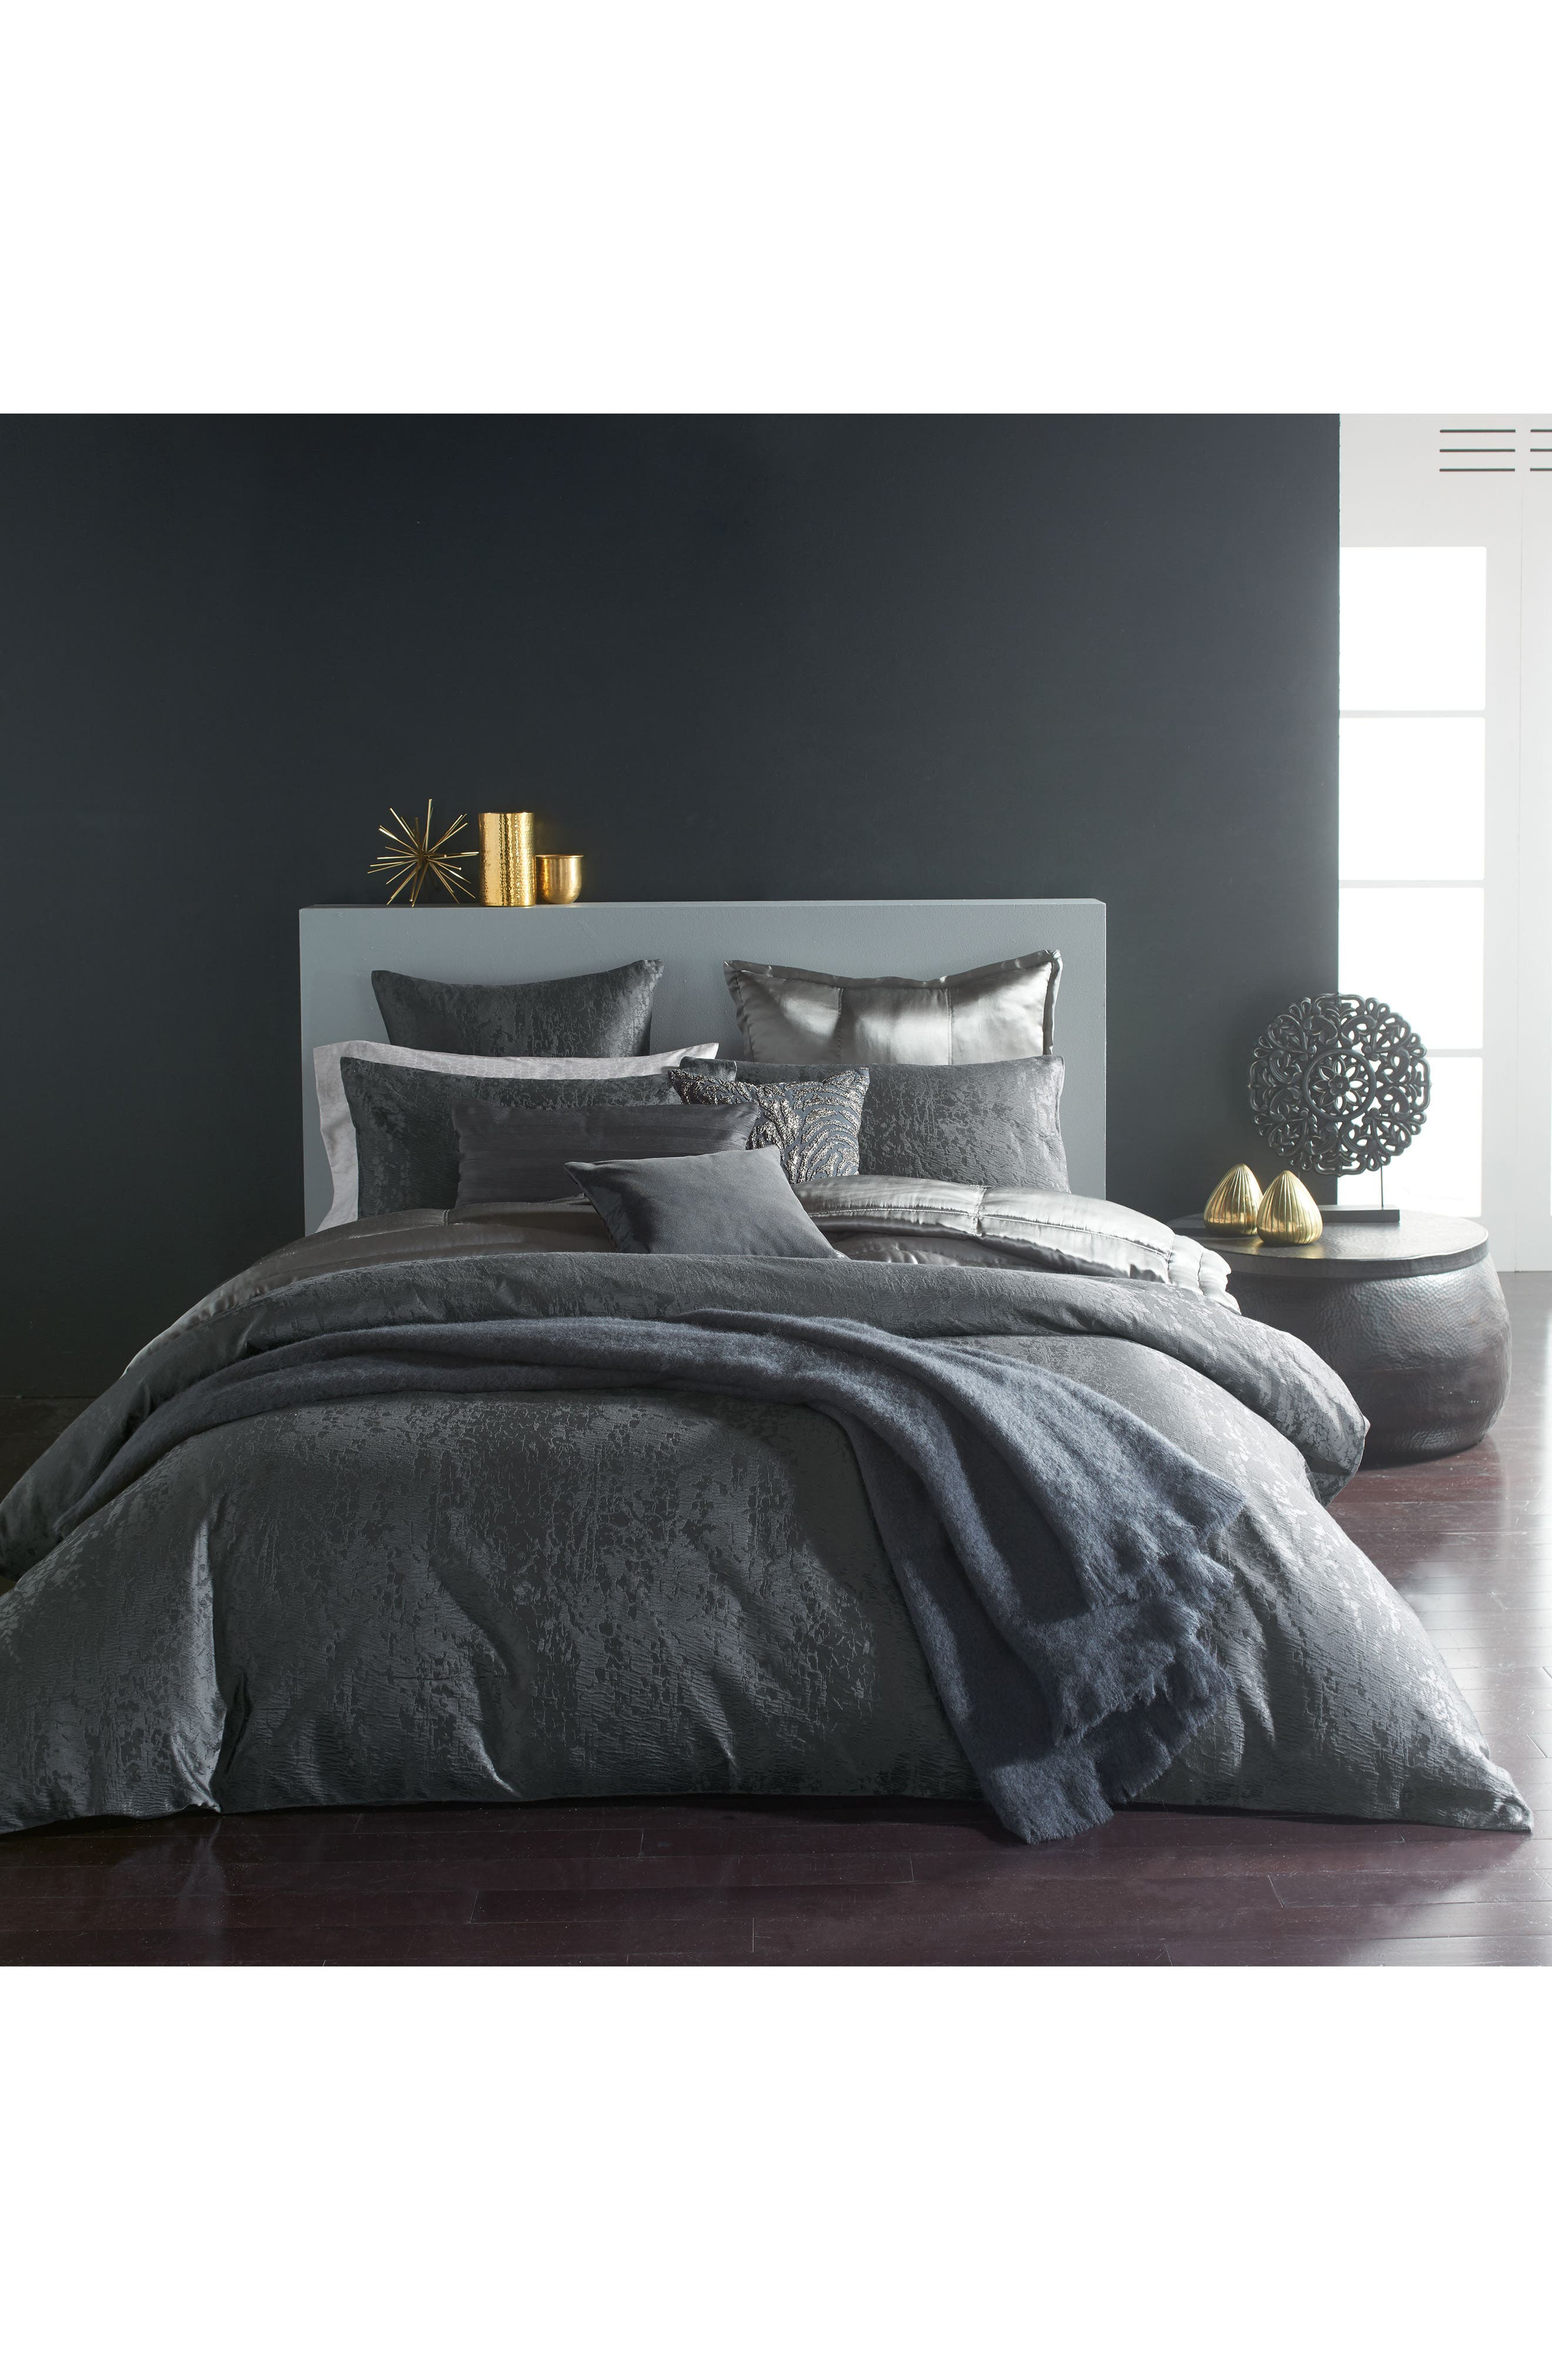 modern duvet covers  pillow shams  nordstrom  nordstrom -